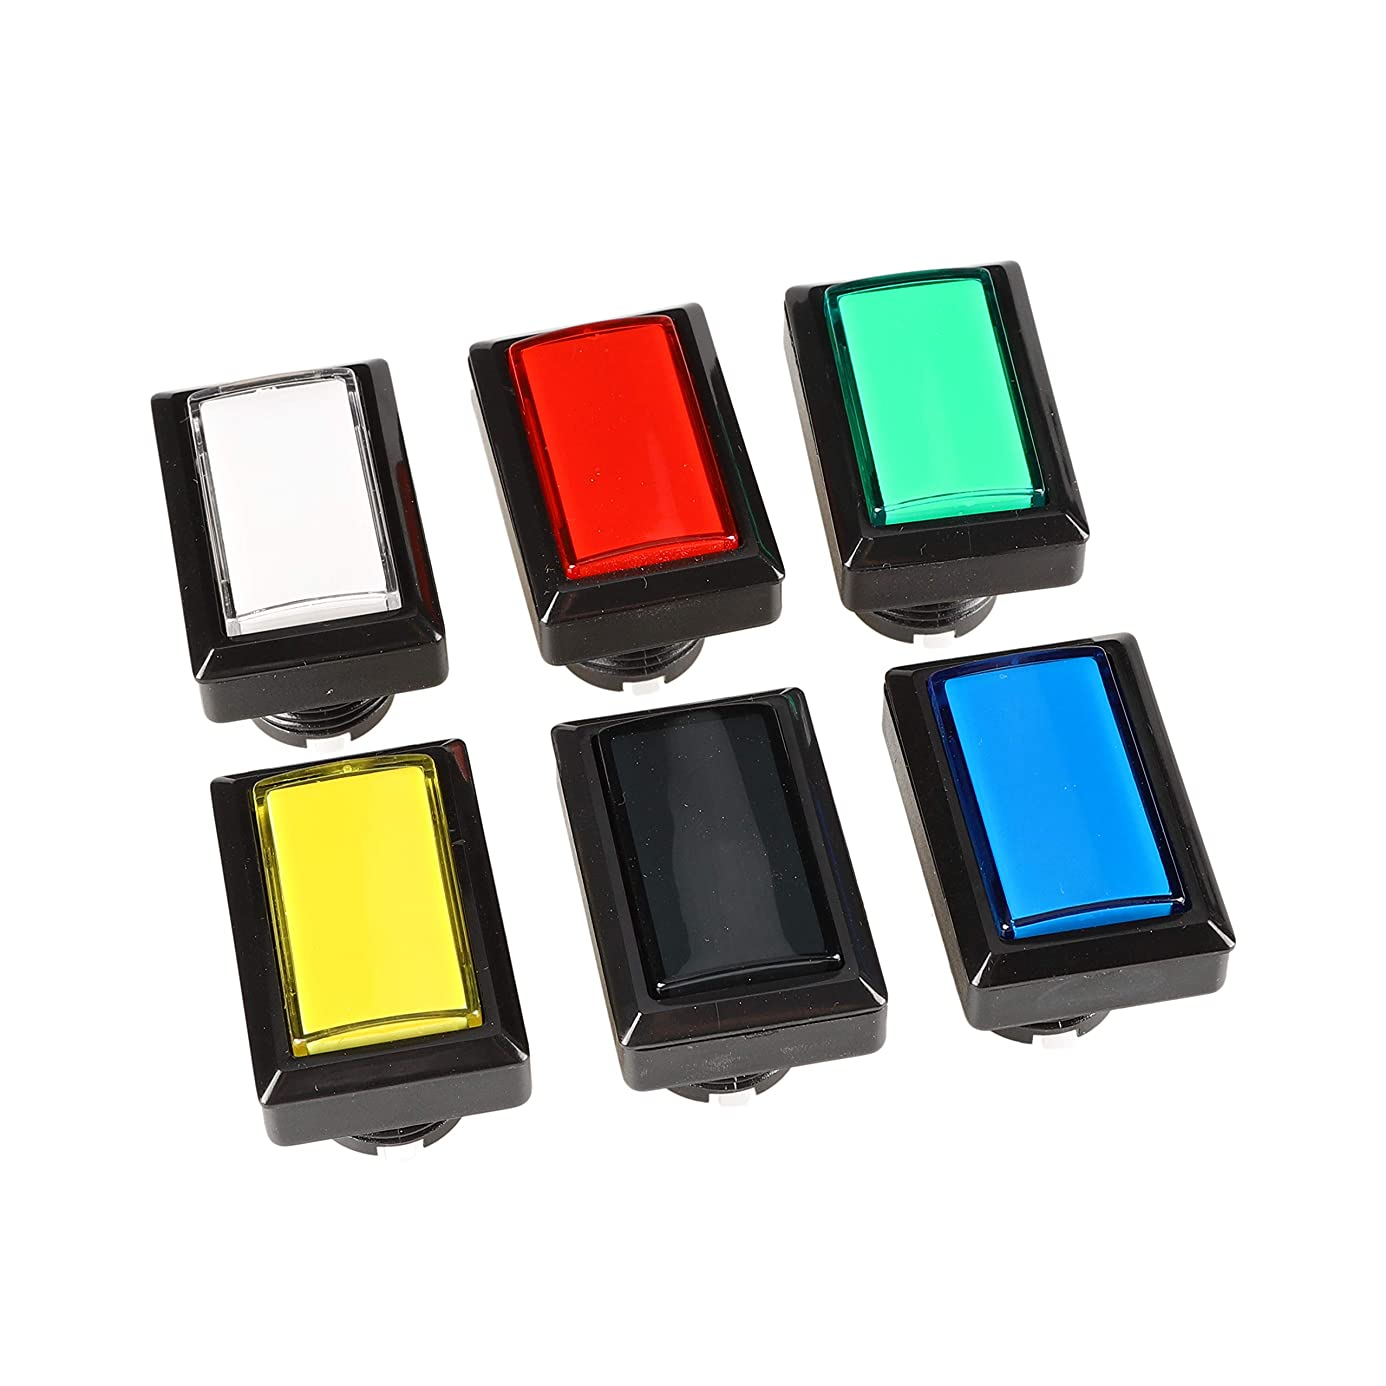 EG STARTS 6X Arcade Rectangle LED Push Buttons Switch for Arcade Machine Games Mame Jamma Parts 12V